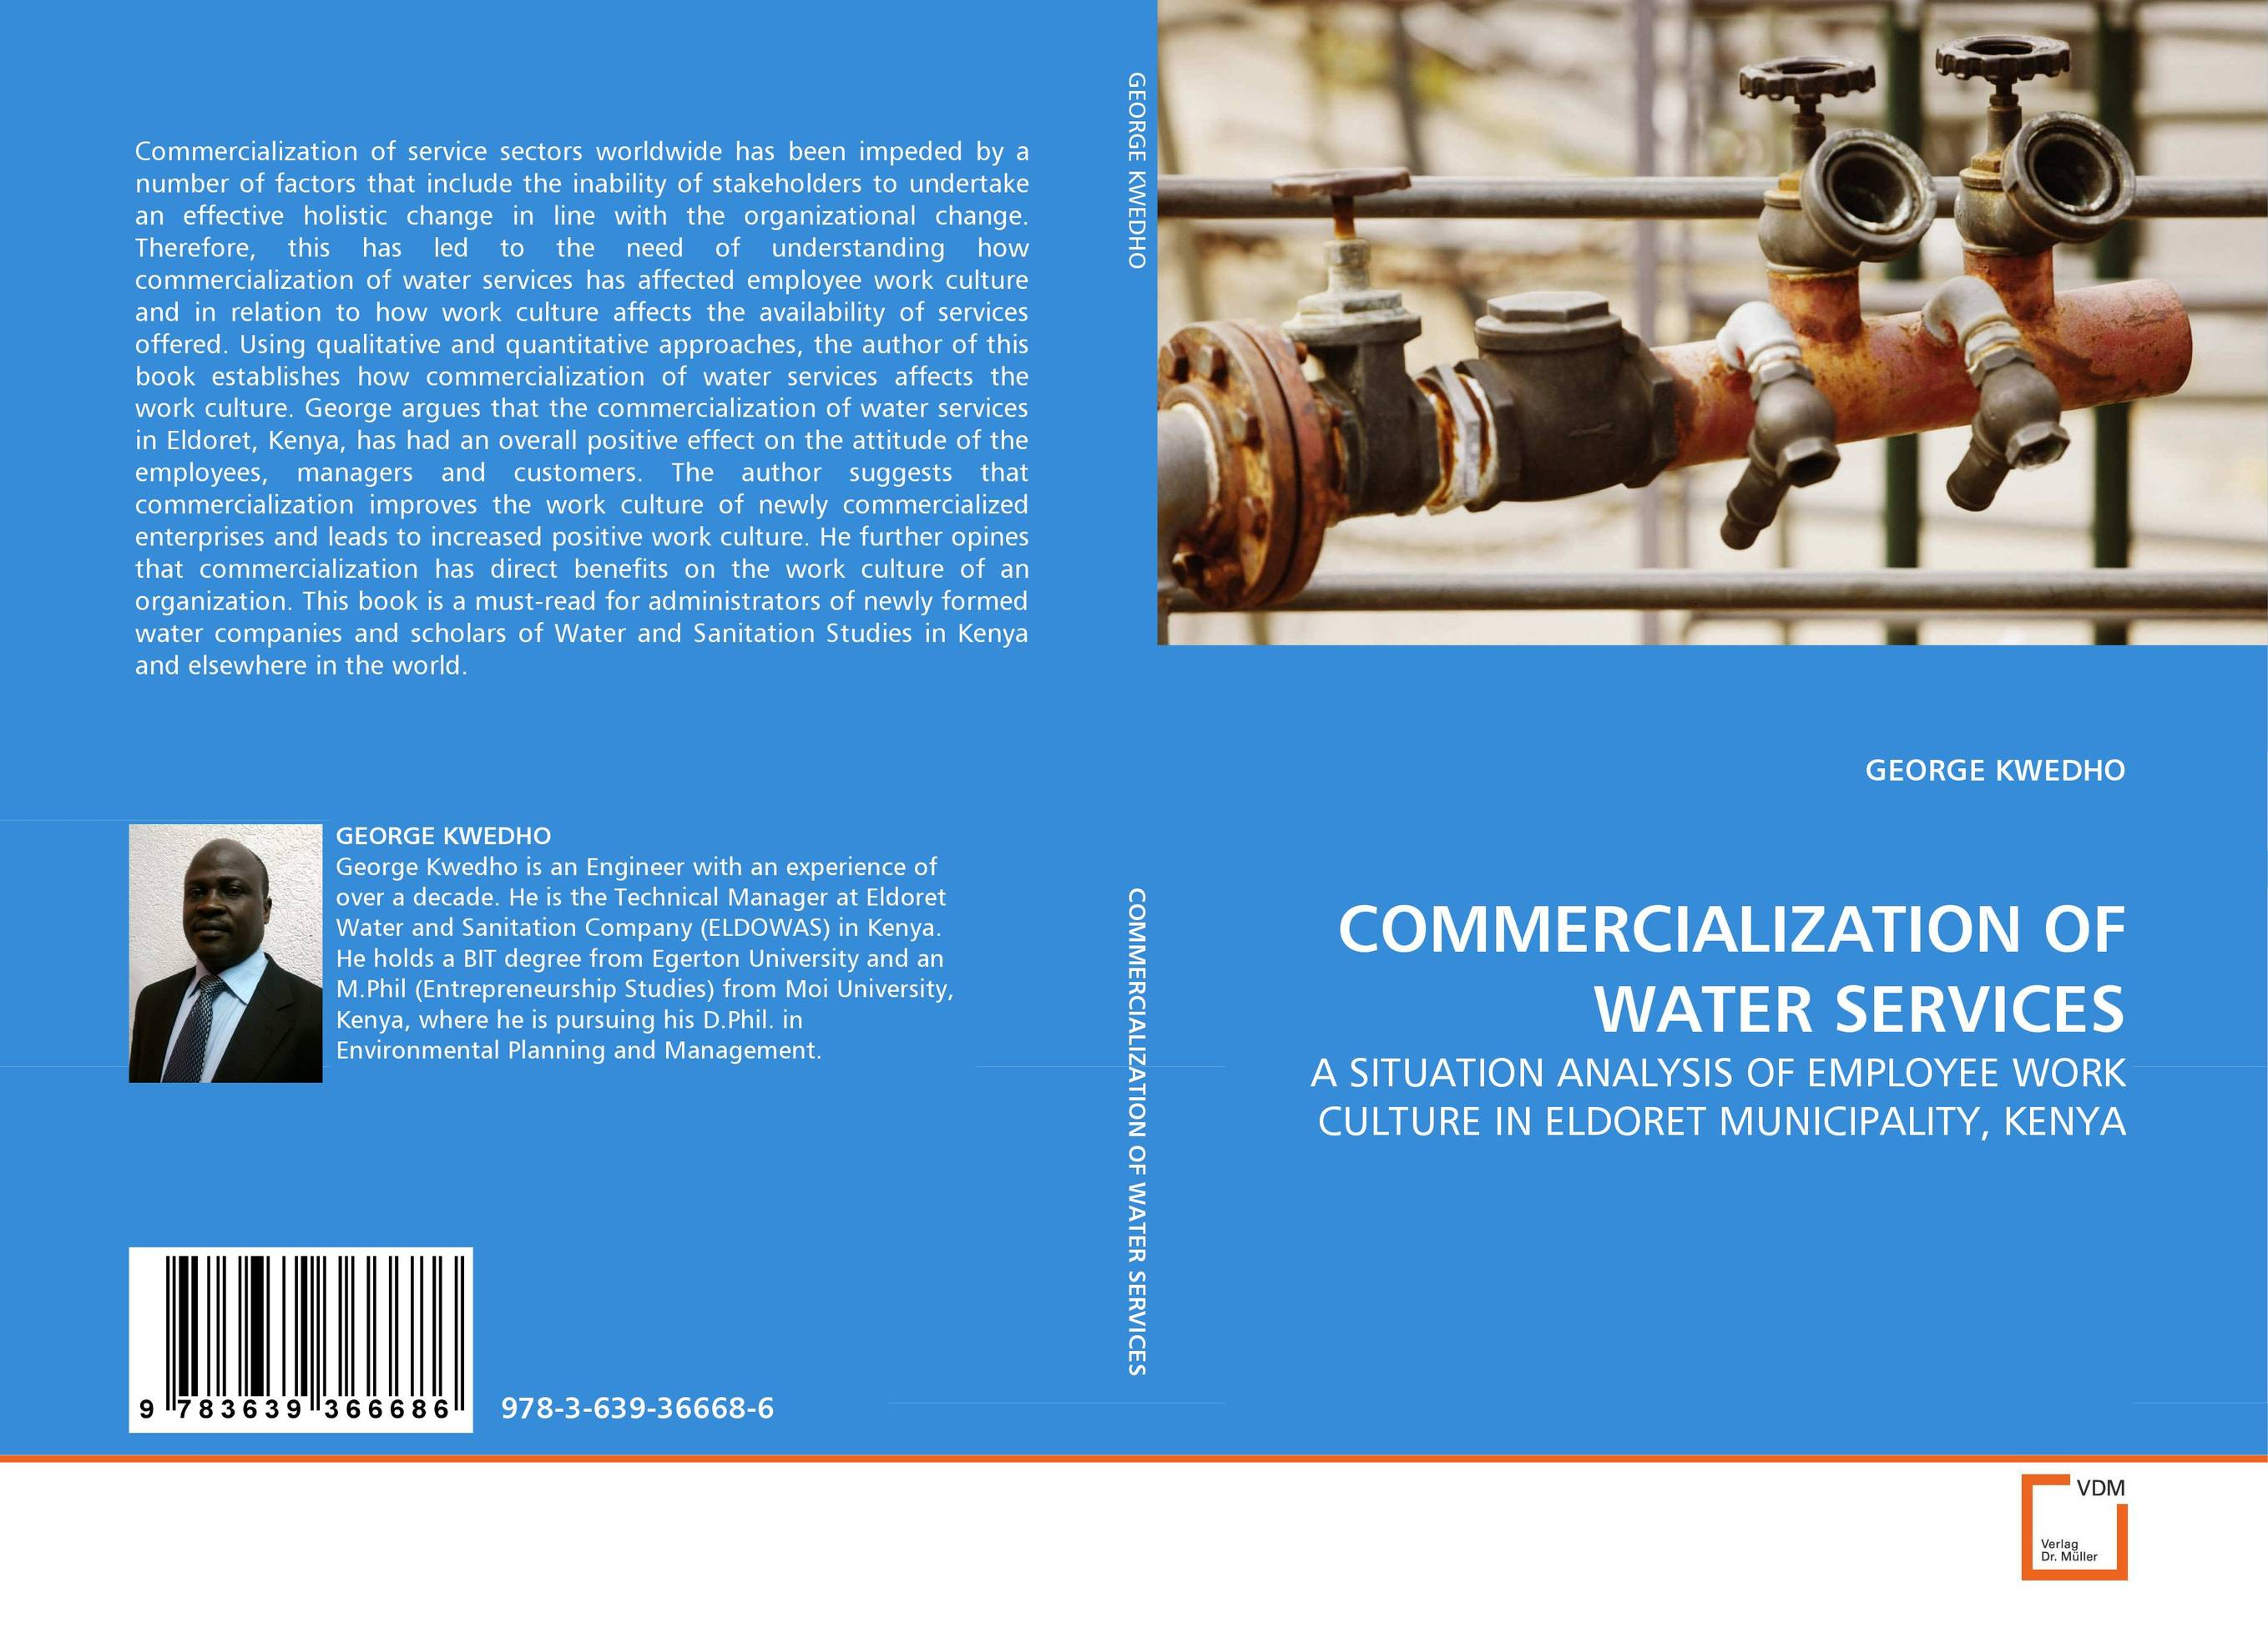 COMMERCIALIZATION OF WATER SERVICES bride of the water god v 3